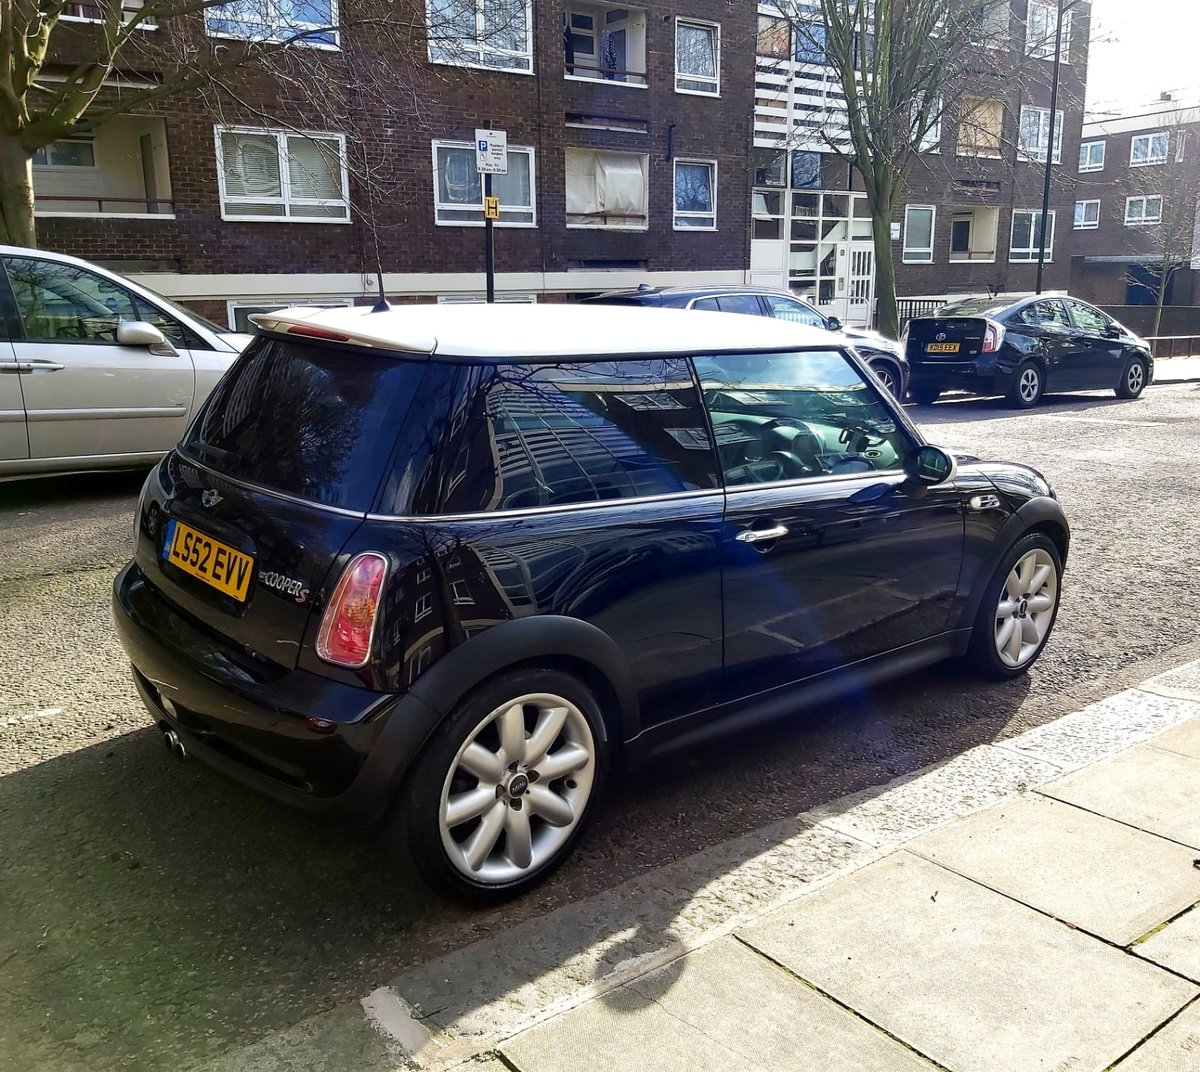 2002 Mini Cooper S low mileage genuine future classic For Sale (picture 4 of 5)